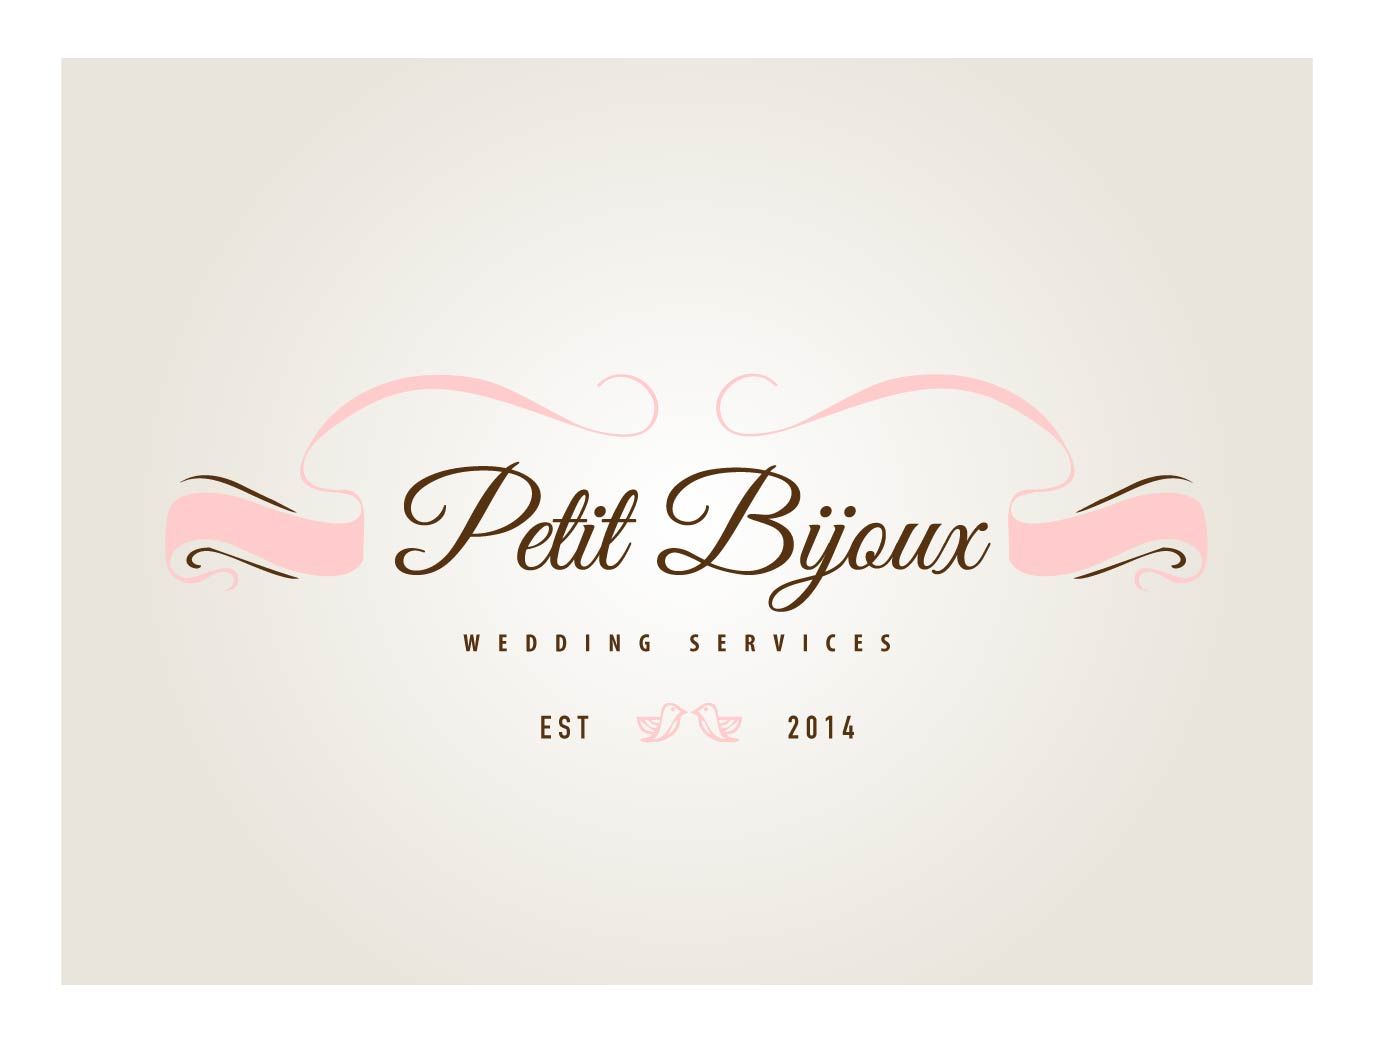 30 Wedding Logo Design Templates  Design Trends